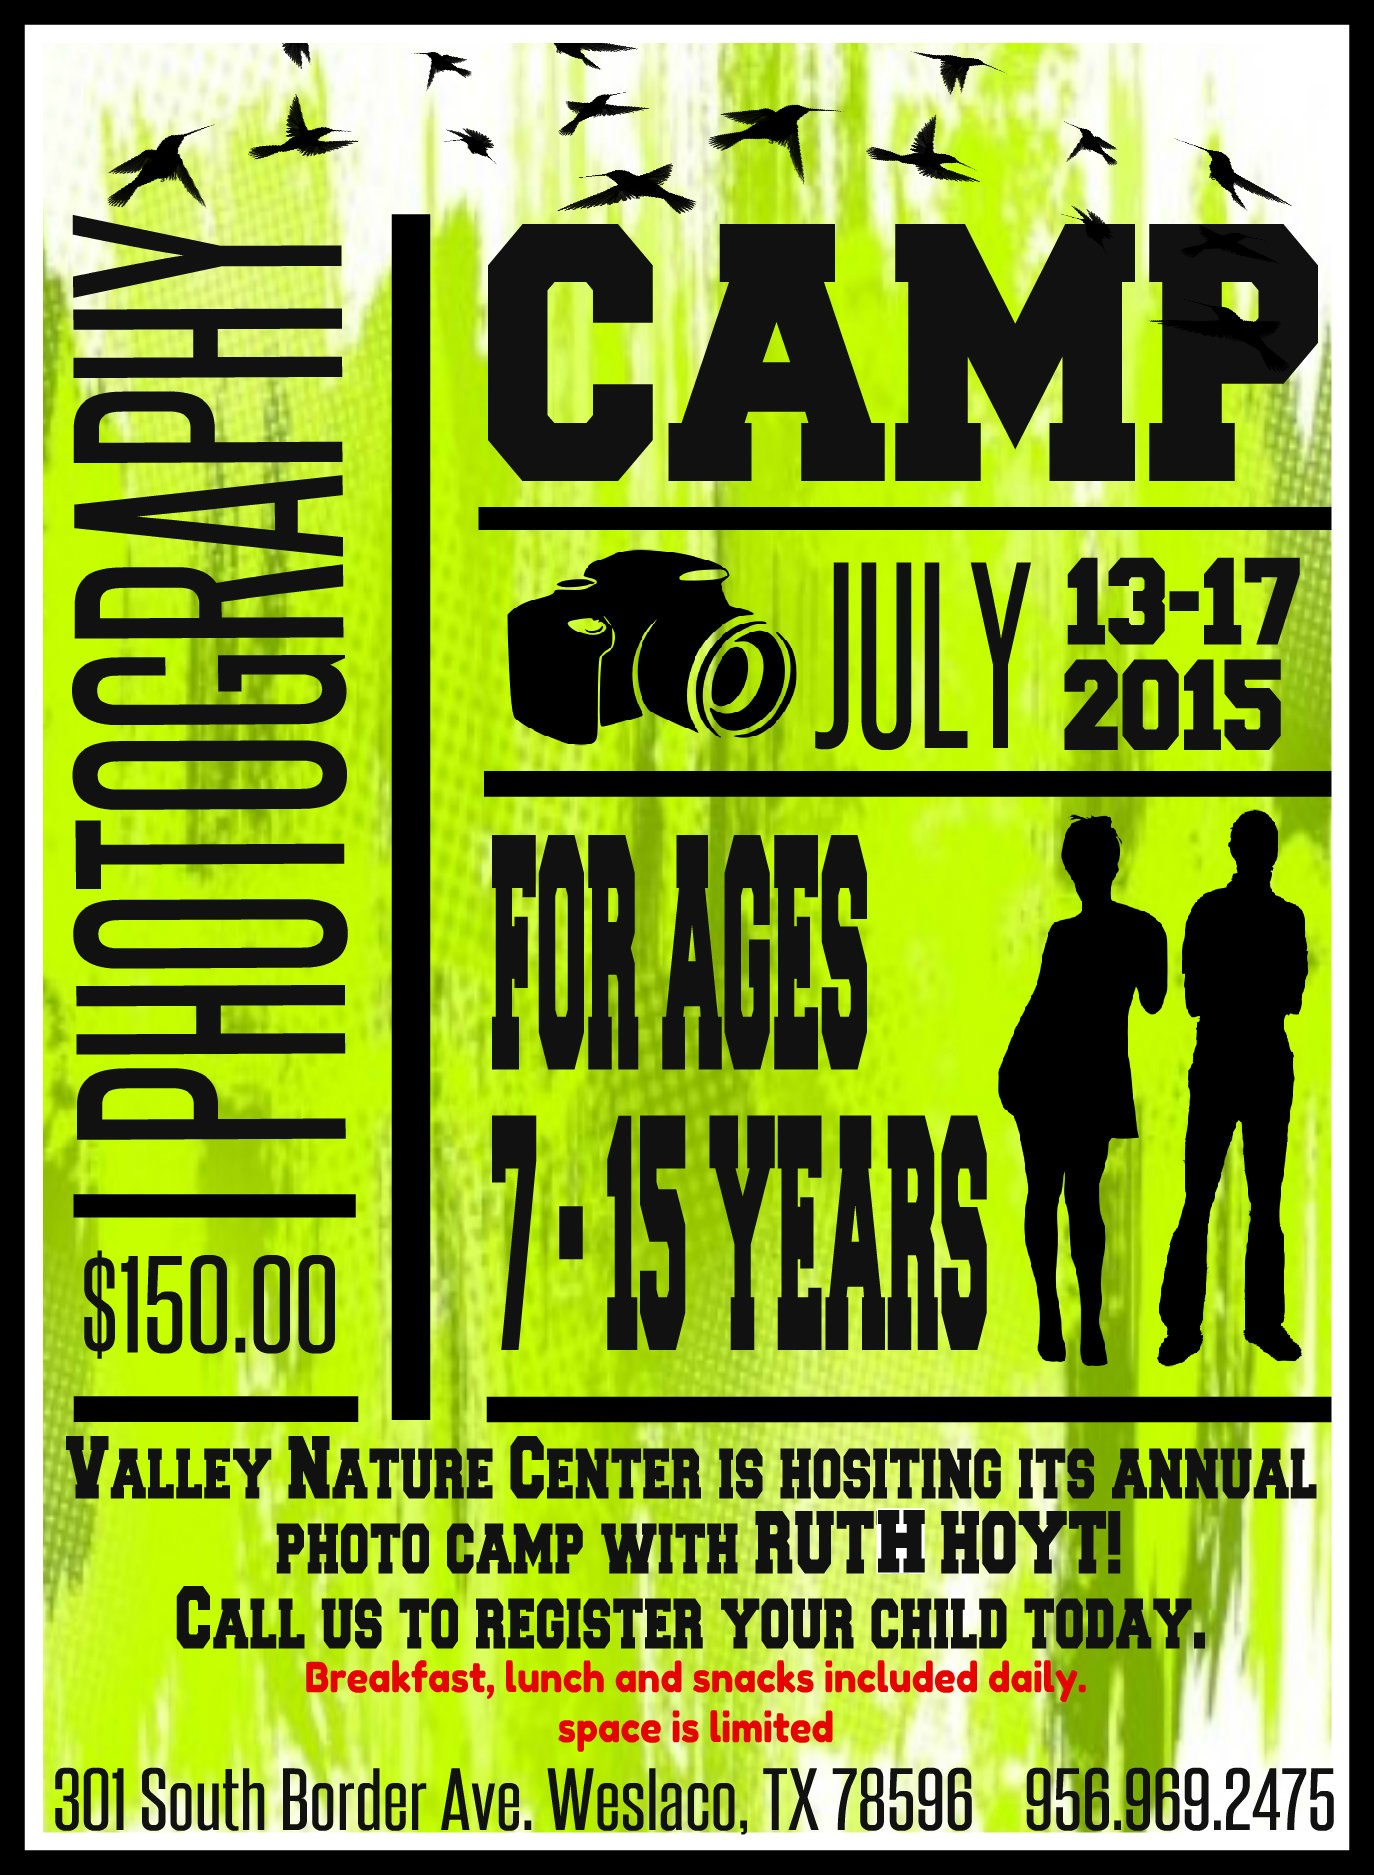 Valley Nature Center's 2015 nature photo camp flyer